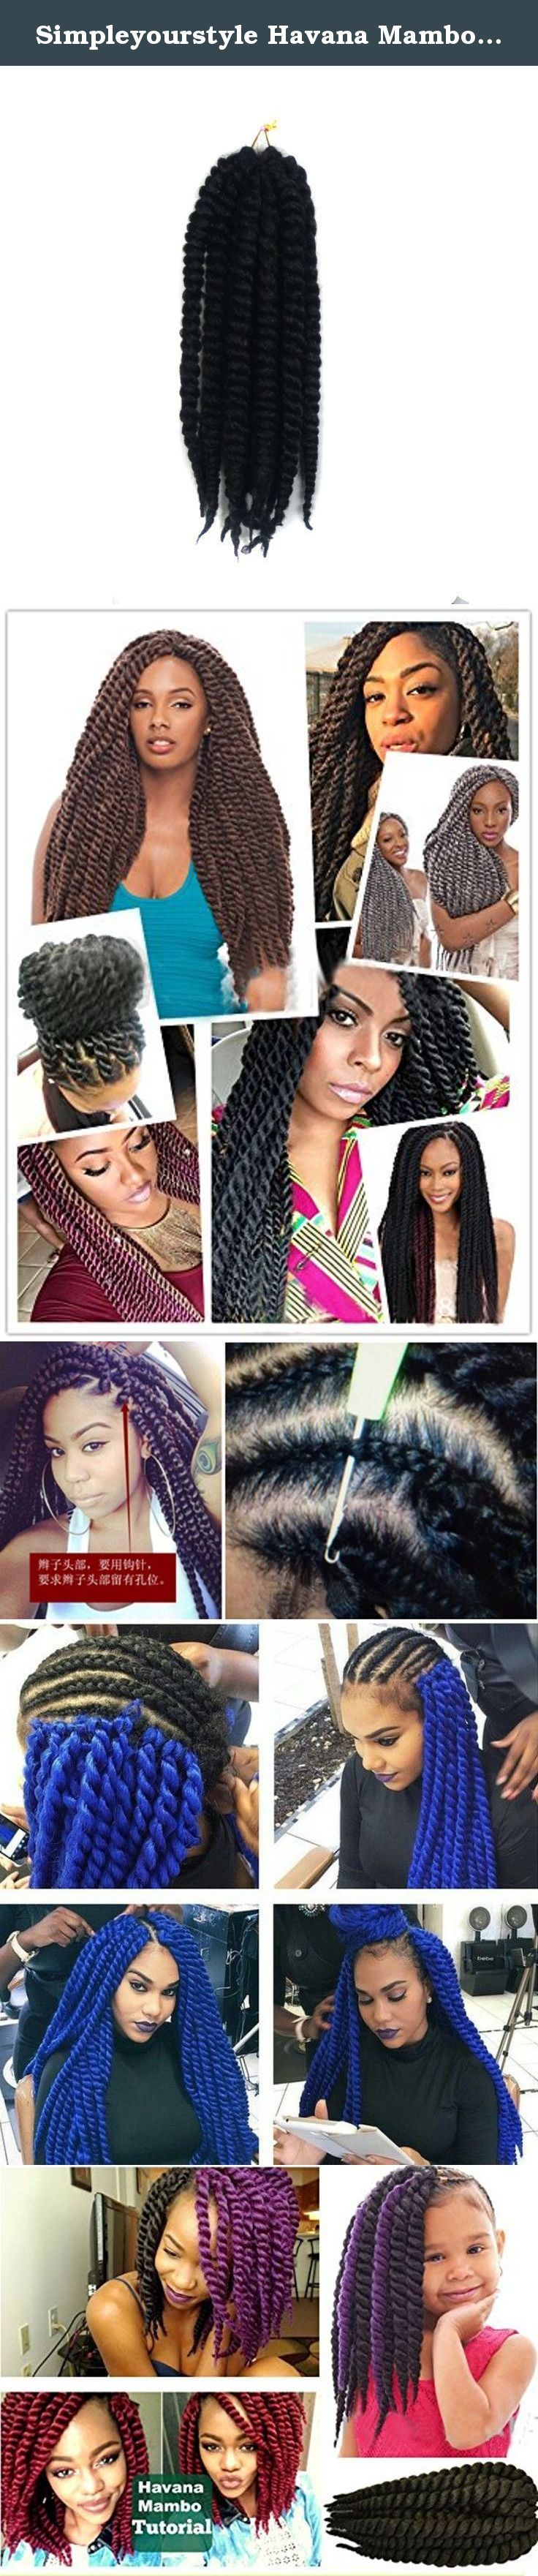 Simpleyourstyle Havana Mambo Twist Crochet Braids Hair 12'' 90g/pack = 12pcs Synthetic Senegalese Twists Braiding Hair Extension 1B#. Simpleyourstyle Havana Mambo Twist Crochet Braids Hair 12'' 90g/pack = 12pcs Synthetic Senegalese Twists Braiding Hair Extension Shipment:ePacket, 7-15 business days to arrive in US with USPS tracking number Material: 100%kanekalon and toyokaon Synthetic Size: 12inch/30cm Weight:90gram Quantity:1pack=12pcs Suggestion: 3-4packs for full head, suggest to...